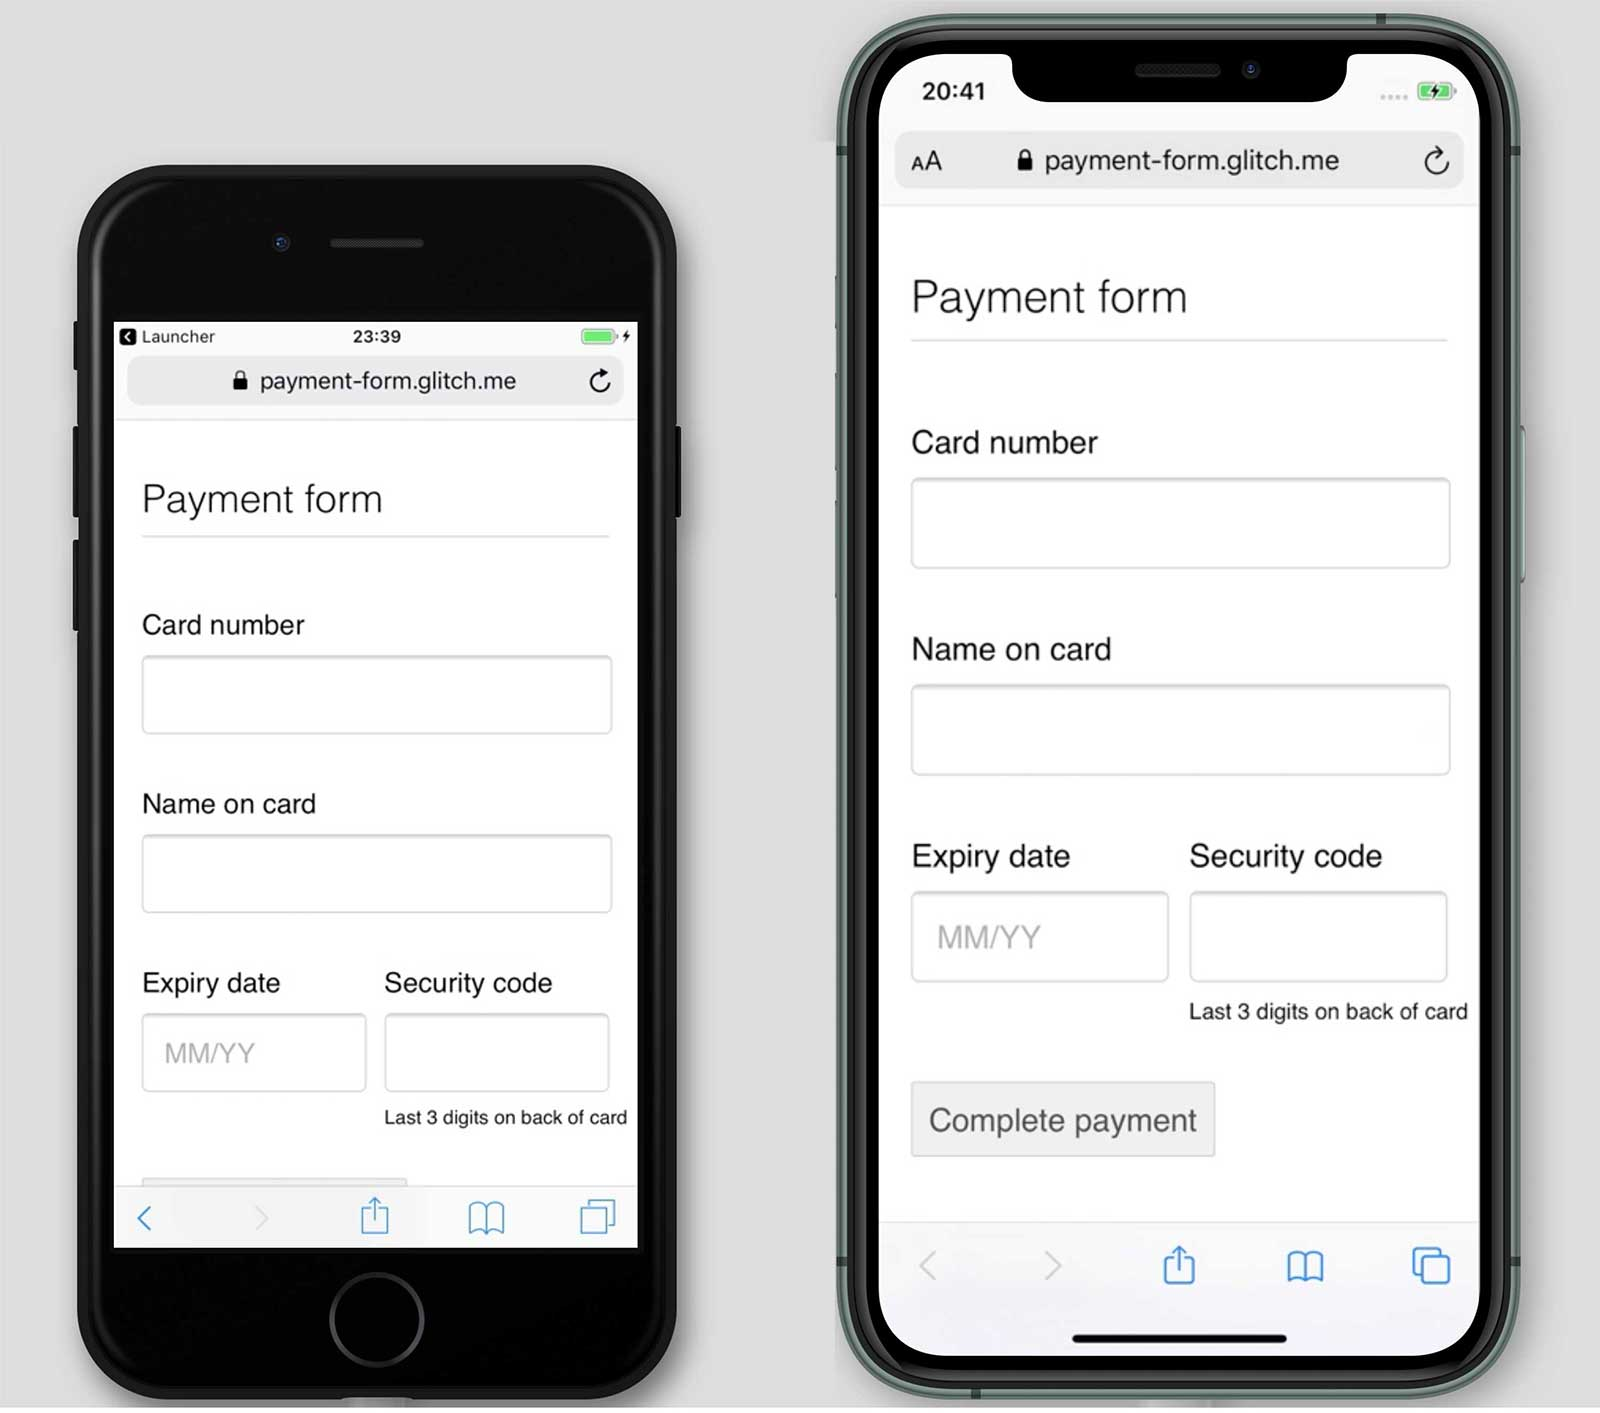 Screenshots of a payment form, payment-form.glitch.me, on iPhone 7 and 11. The Complete Payment button is shown on iPhone 11 but not 7